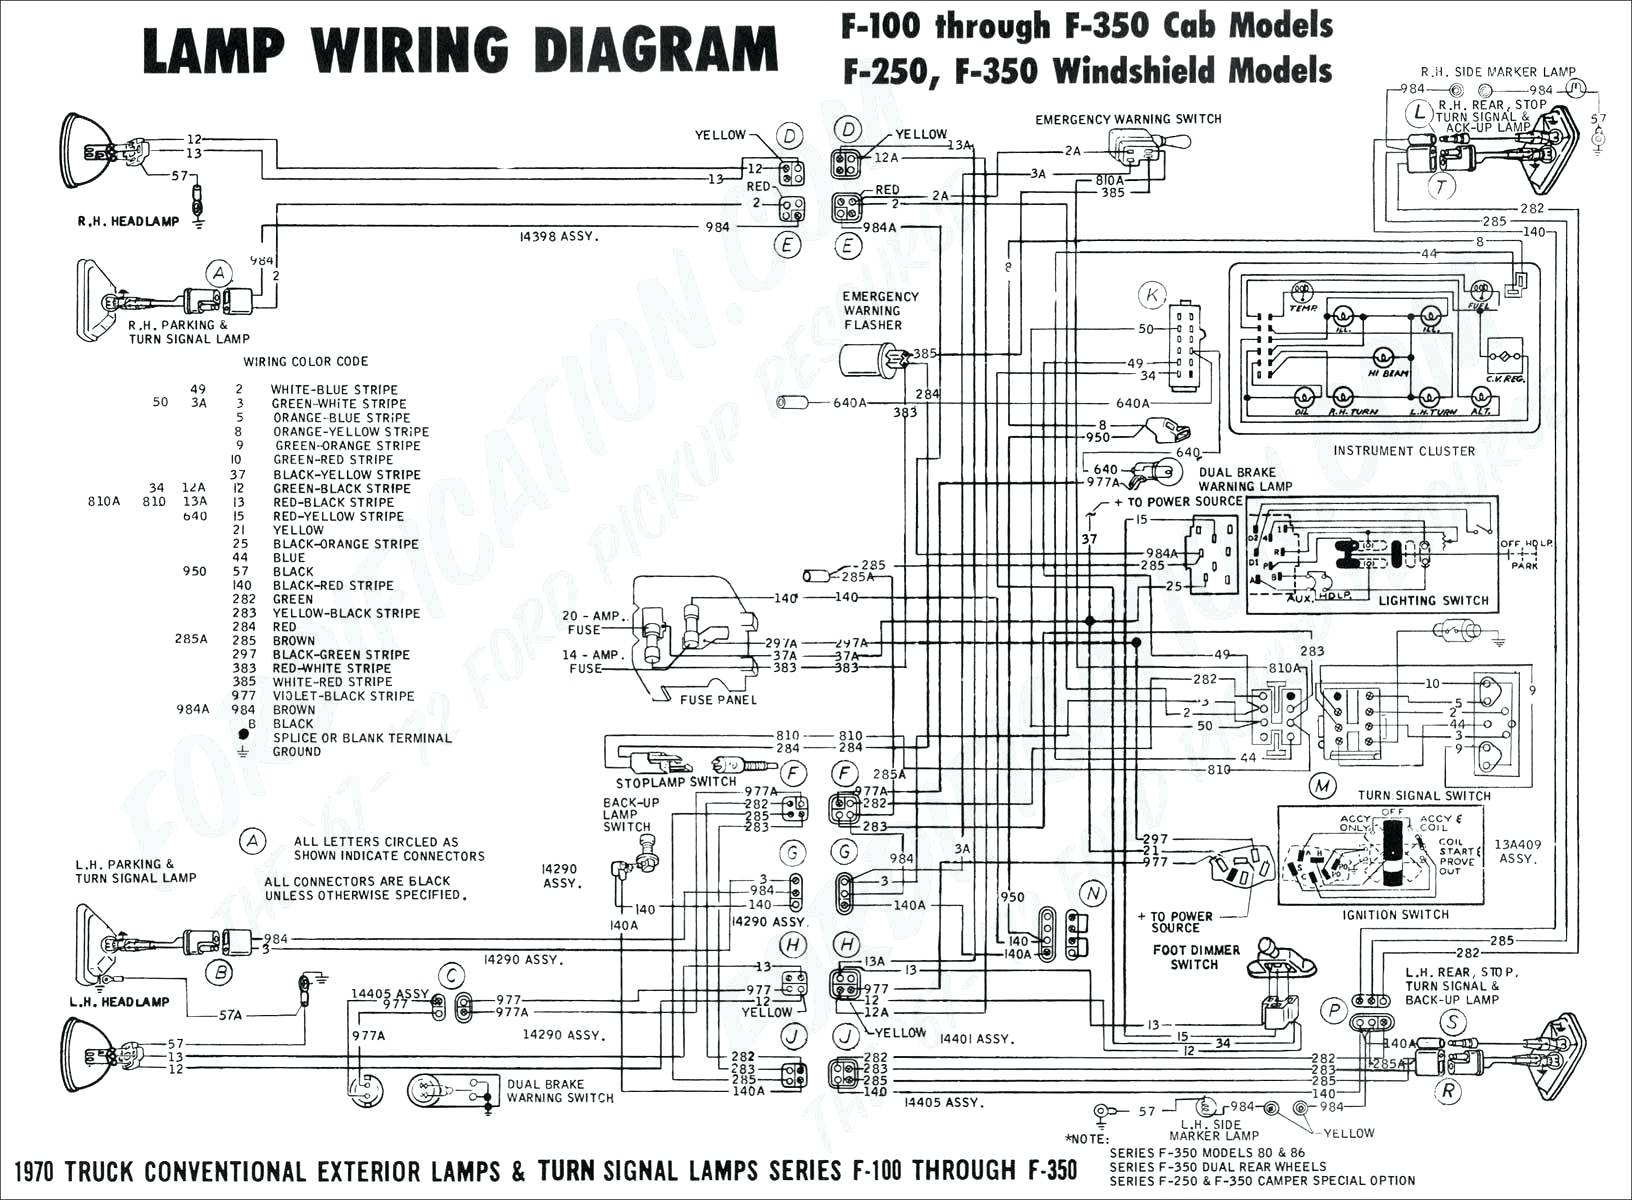 Diagram Roadmaster Wiring Diode Diagram File Rl52241 on towed vehicle lights, wind generator with tow kit, towed vehicle wiring harness, towed vehicle lighting systems,